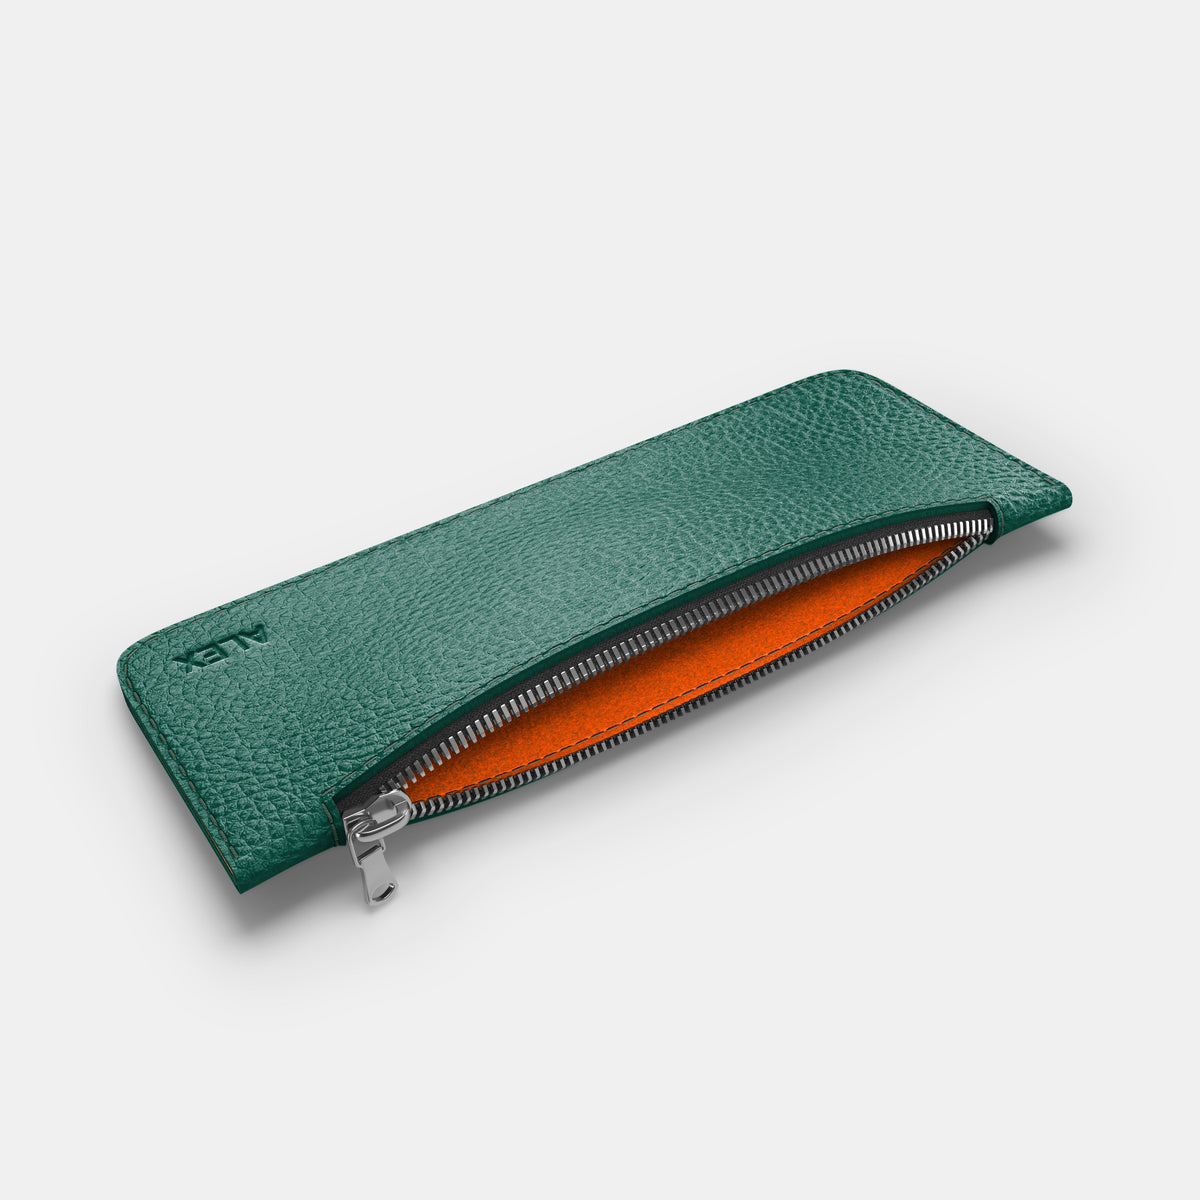 Pencil Case - Avocado and Orange - RYAN London